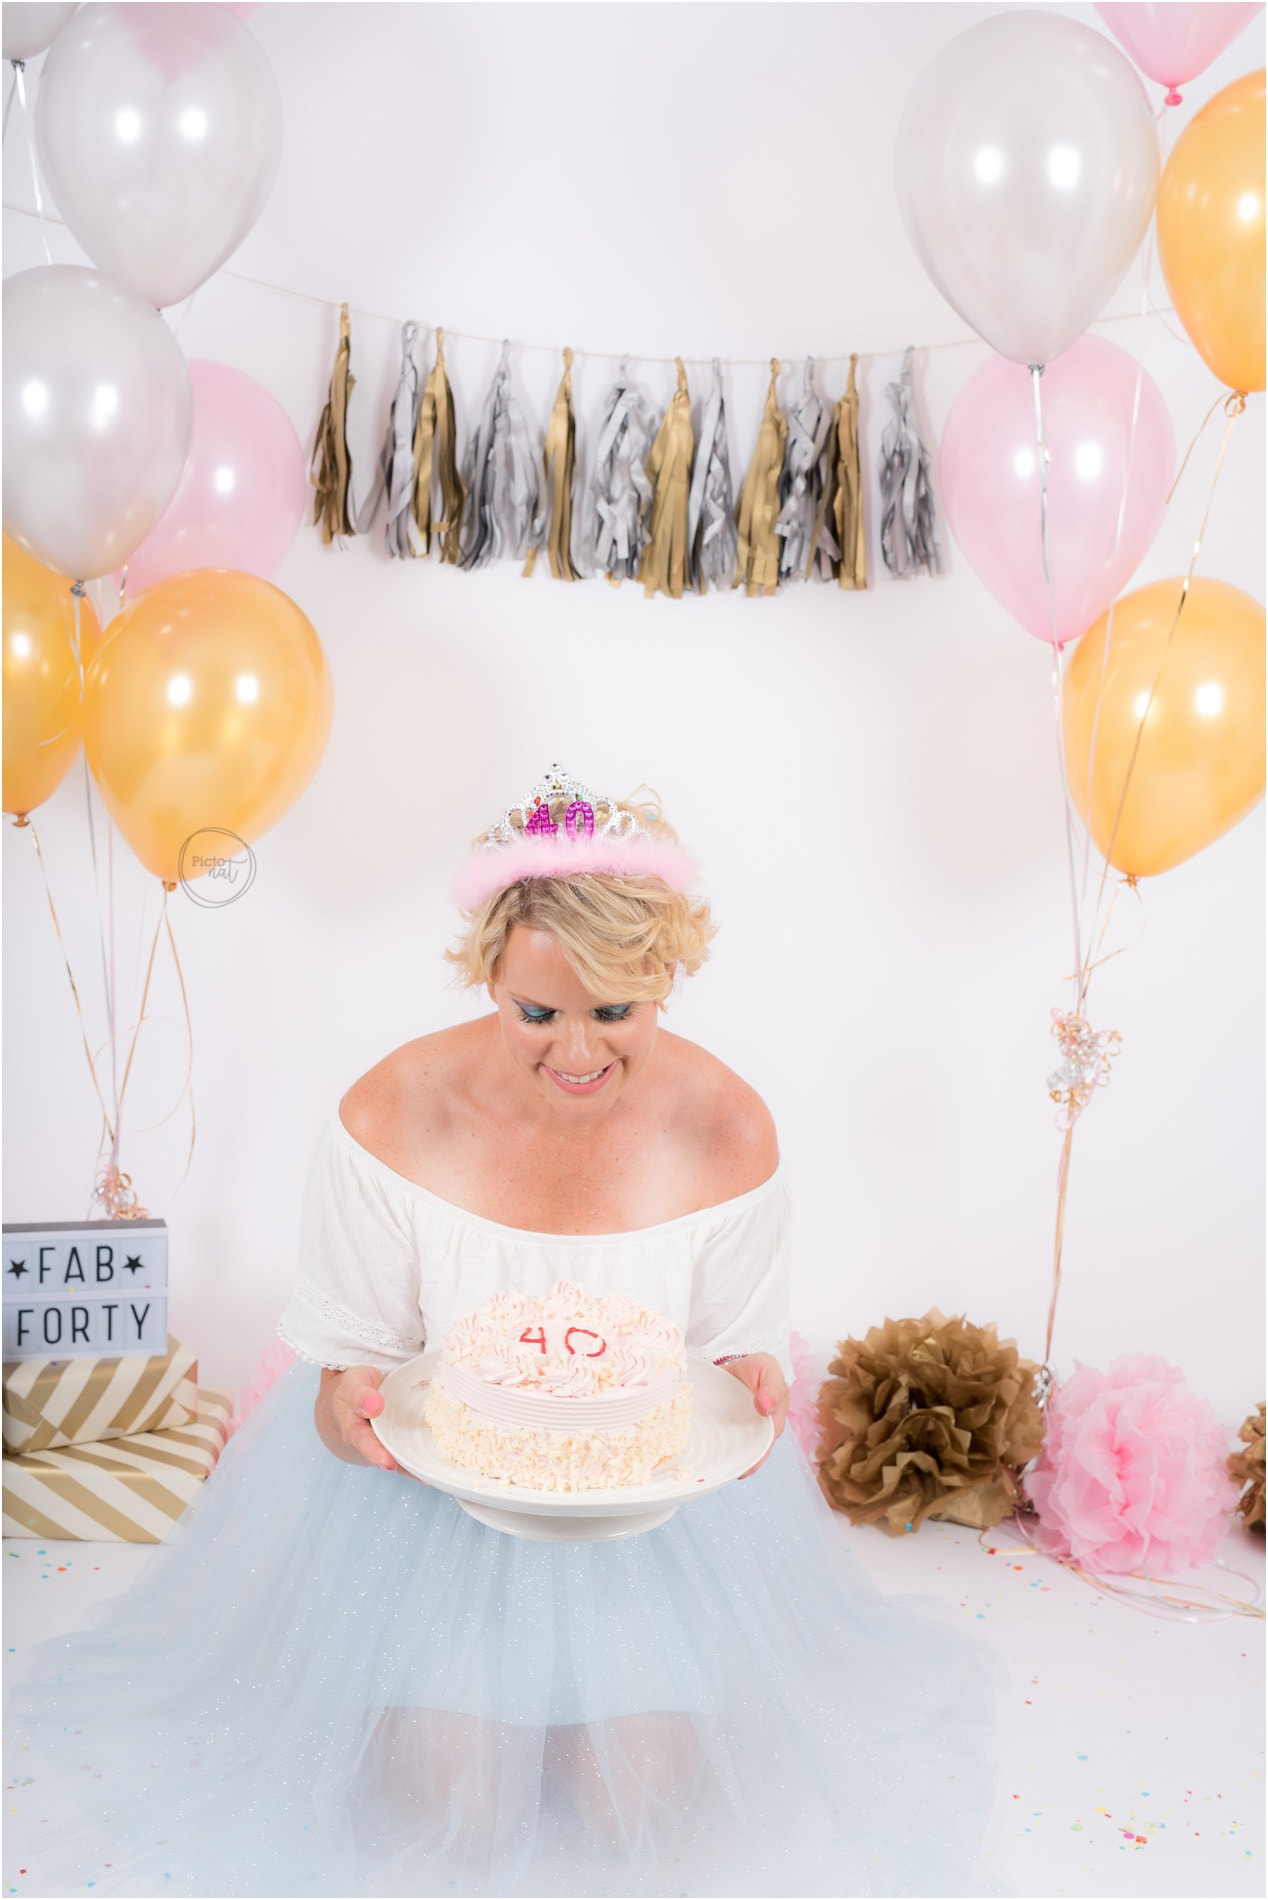 PictonatPhotography_FabForty_CakeSmash-3a